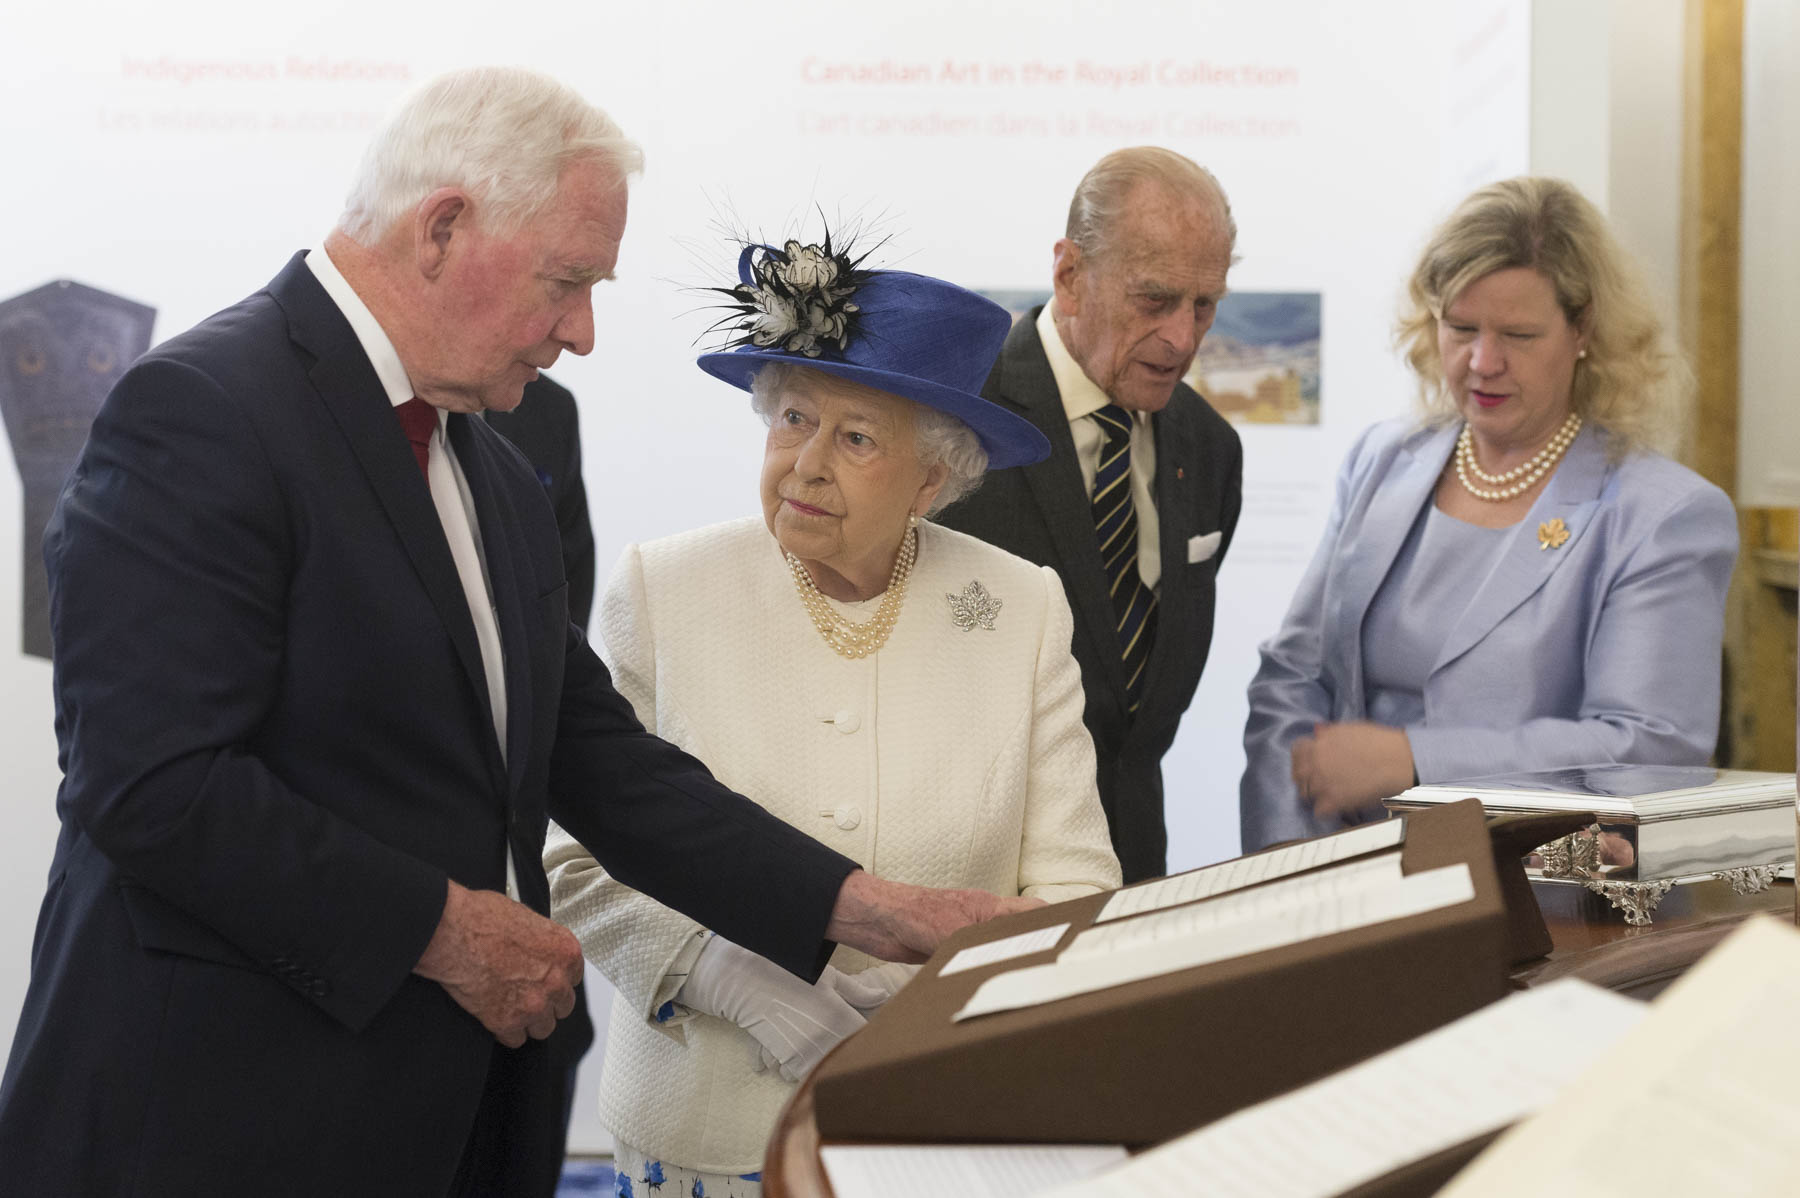 Upon their arrival, Her Majesty and His Royal Highness viewed artifacts and displays celebrating Canada 150.